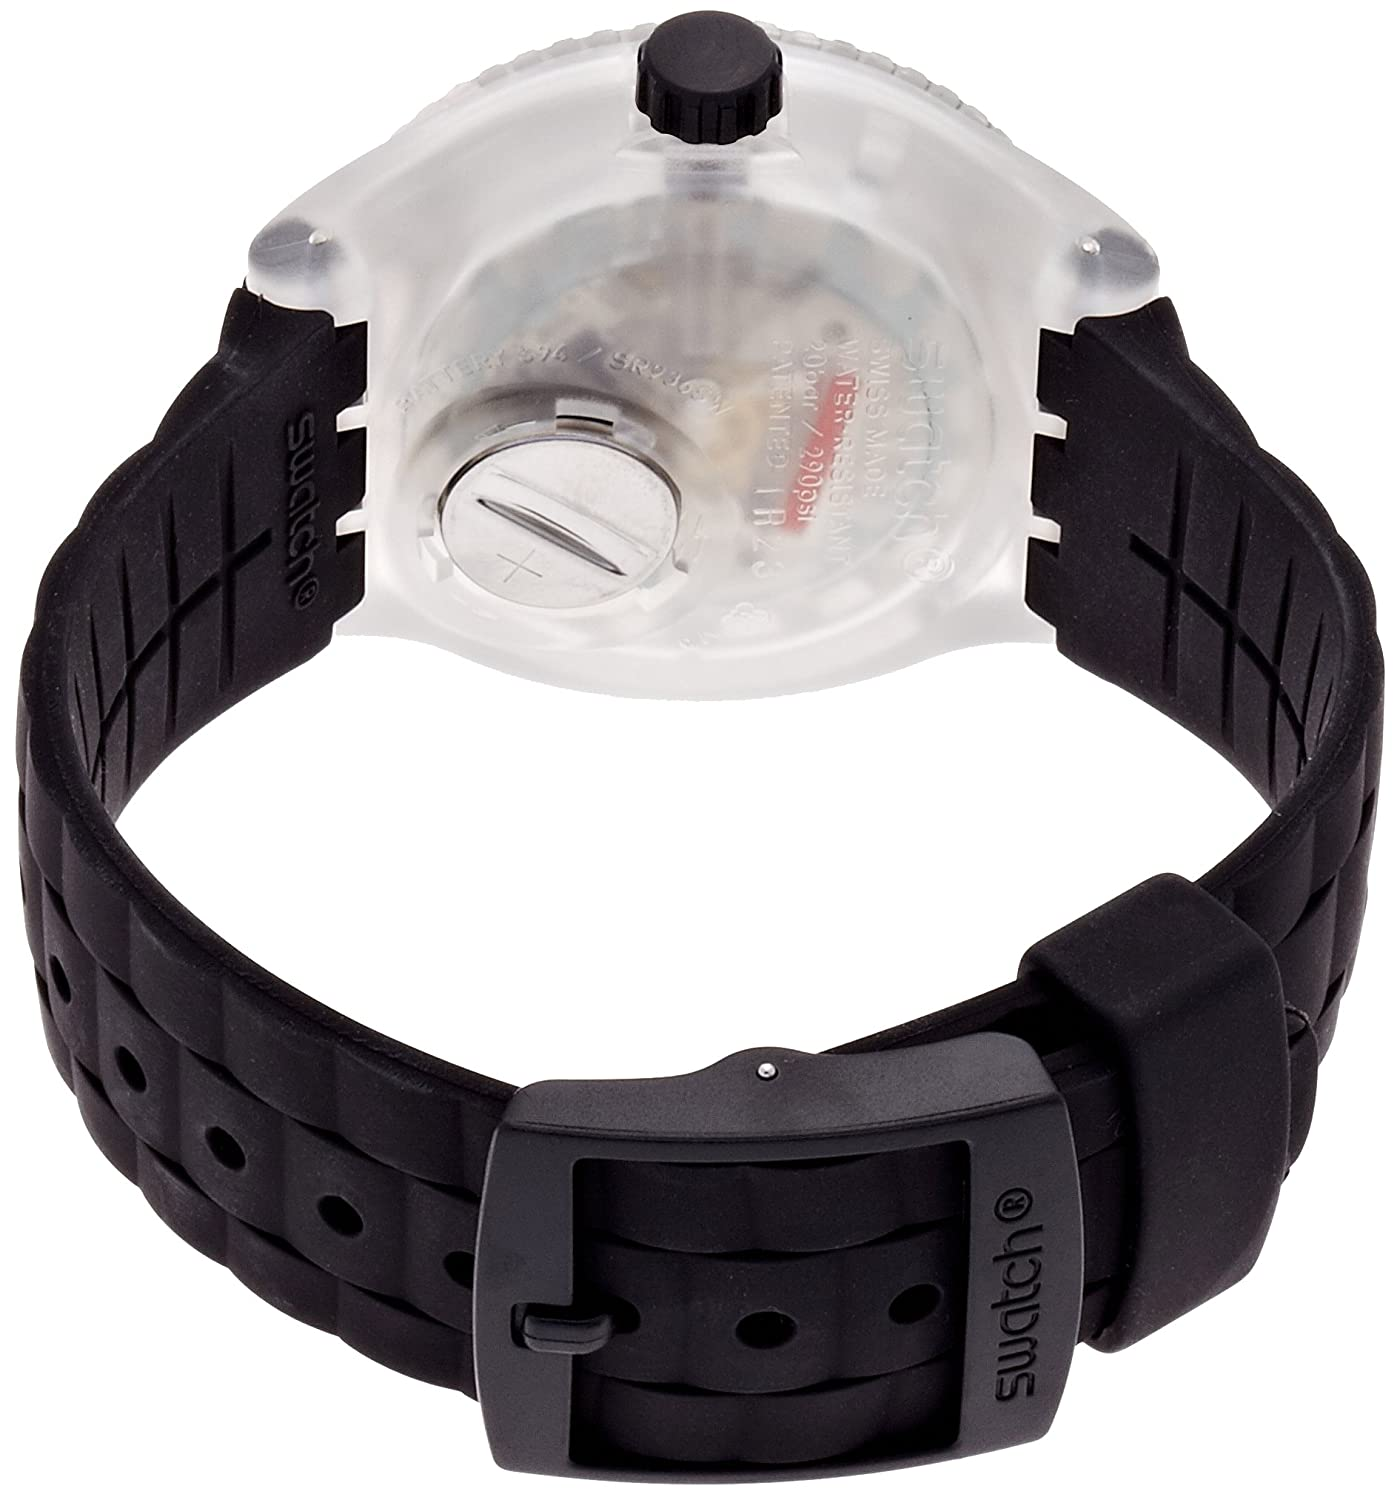 Amazon.com: Swatch Scuba Stormy Black Dial Black Silicone Rubber Unisex Watch SUUK400: Swatch: Watches